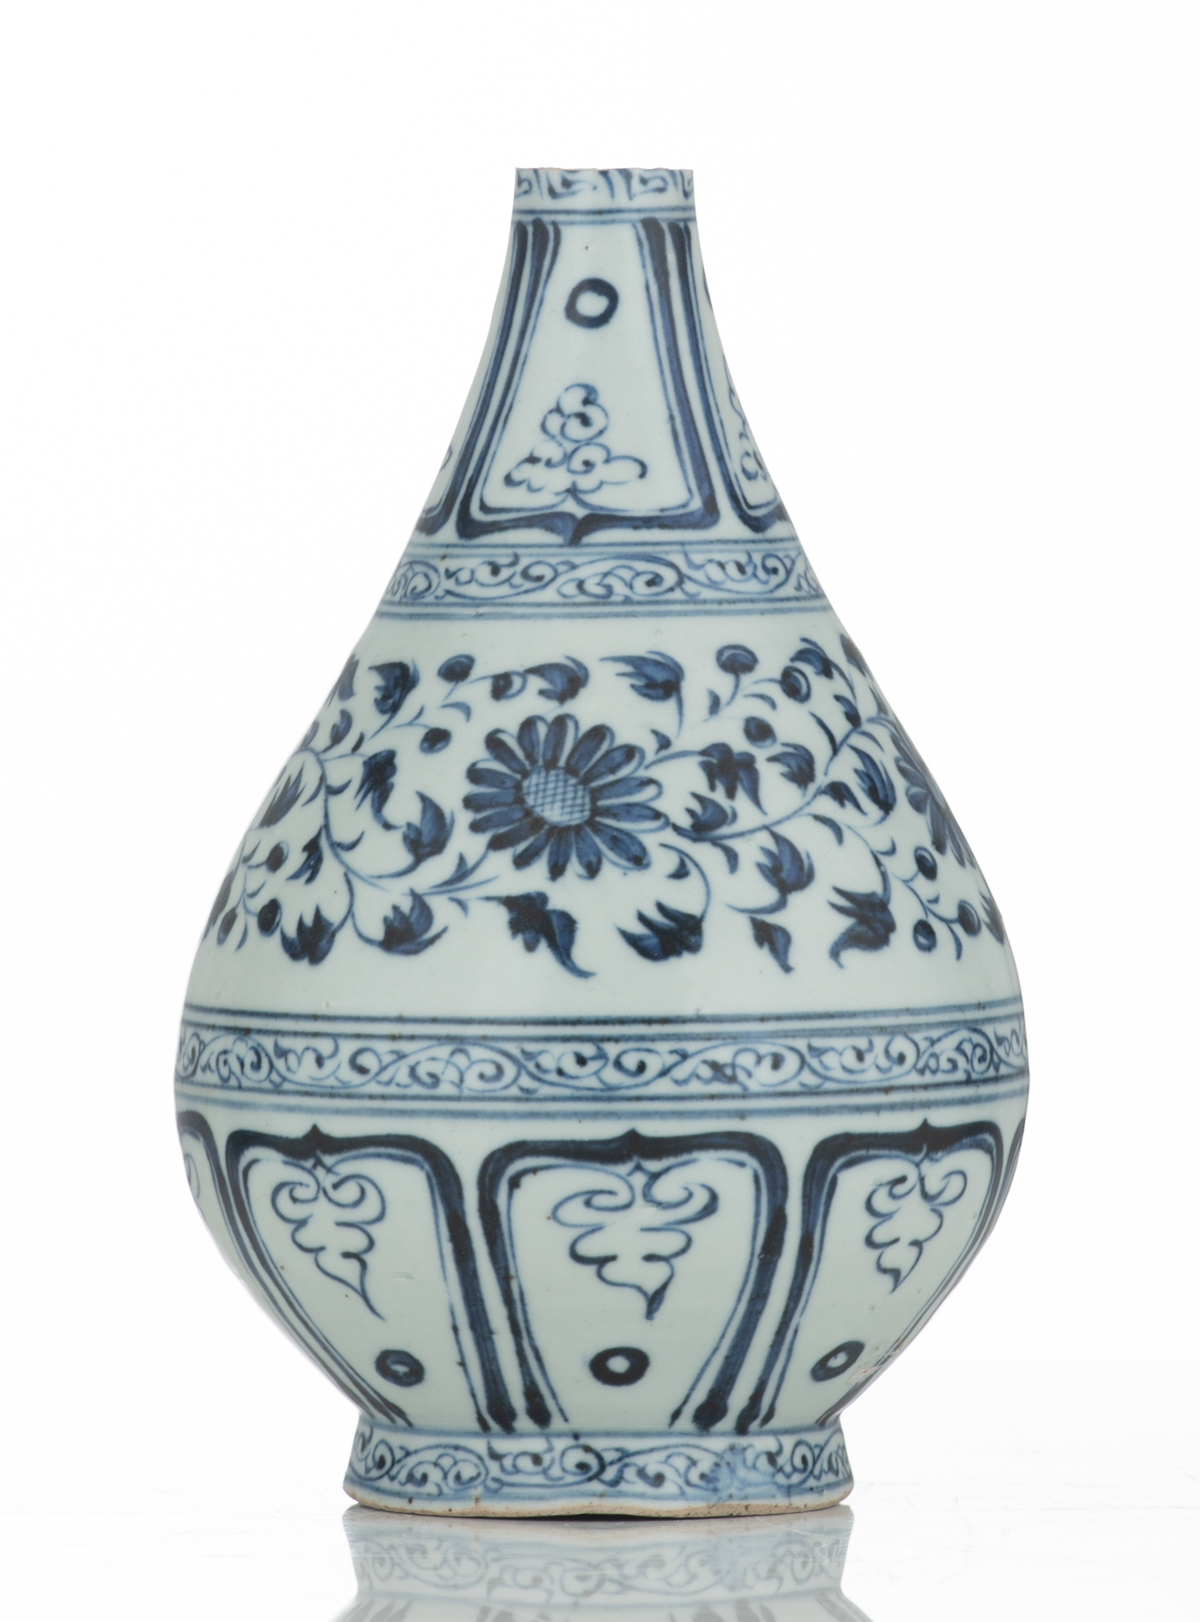 A Chinese blue and white floral decorated Ming type bottle vase, 17thC, H 21,5 cm - Image 2 of 6